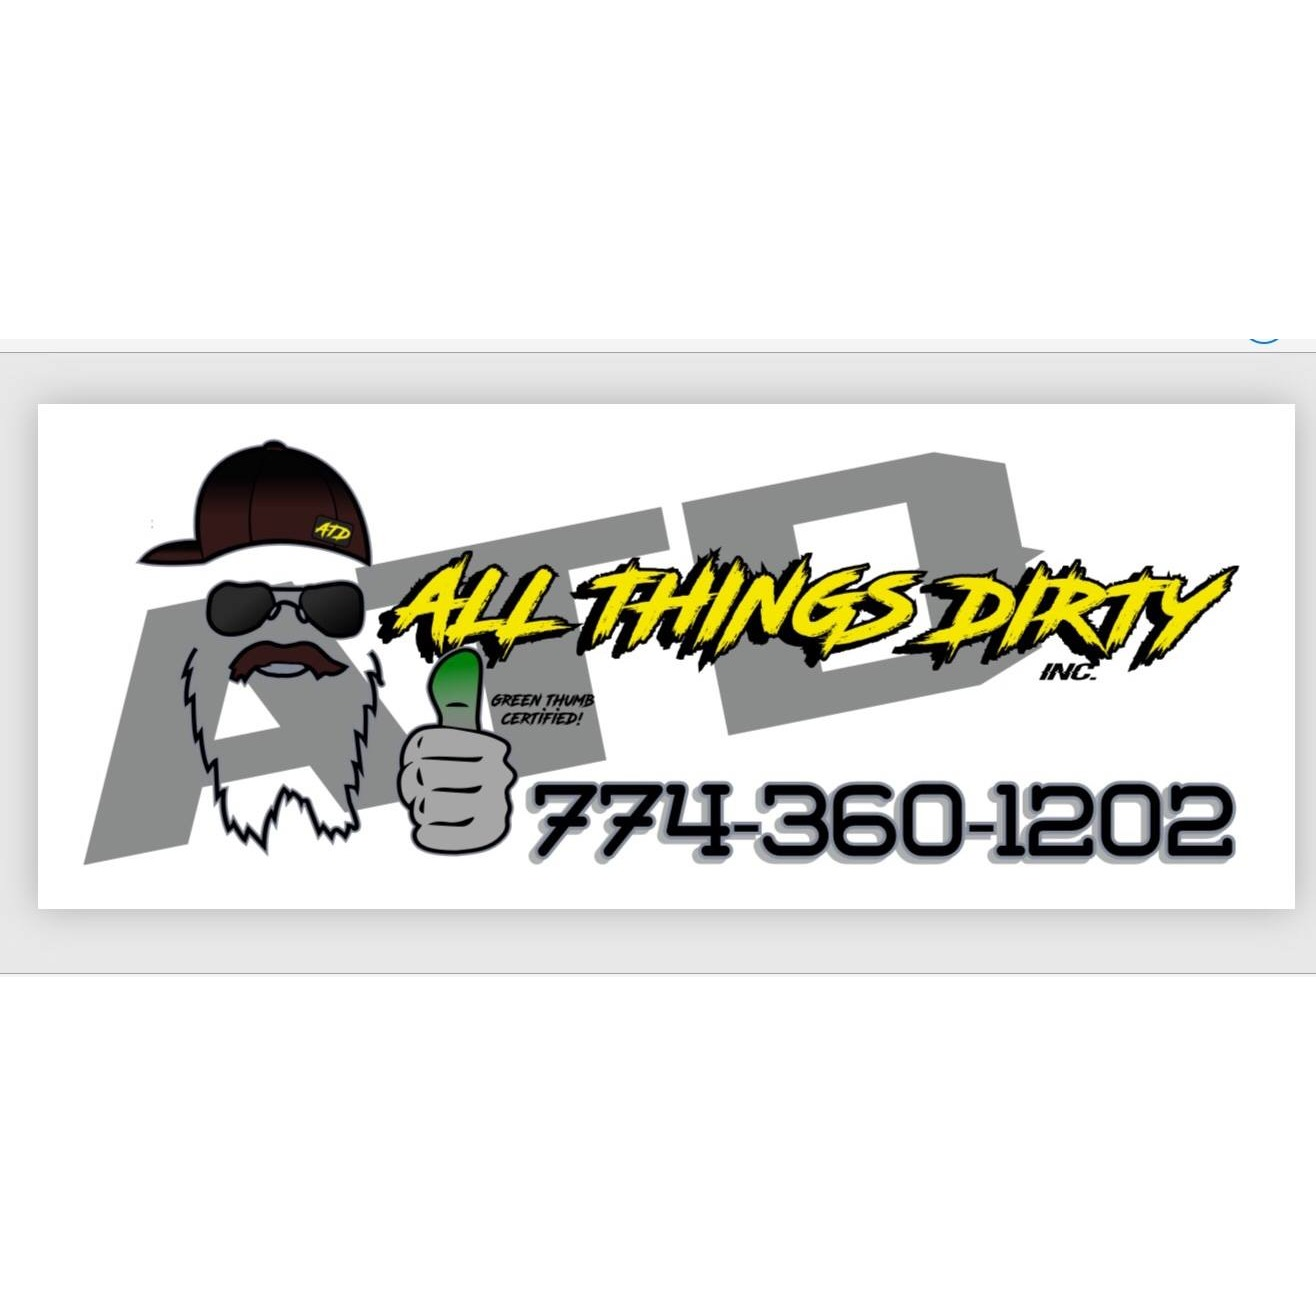 All Things Dirty